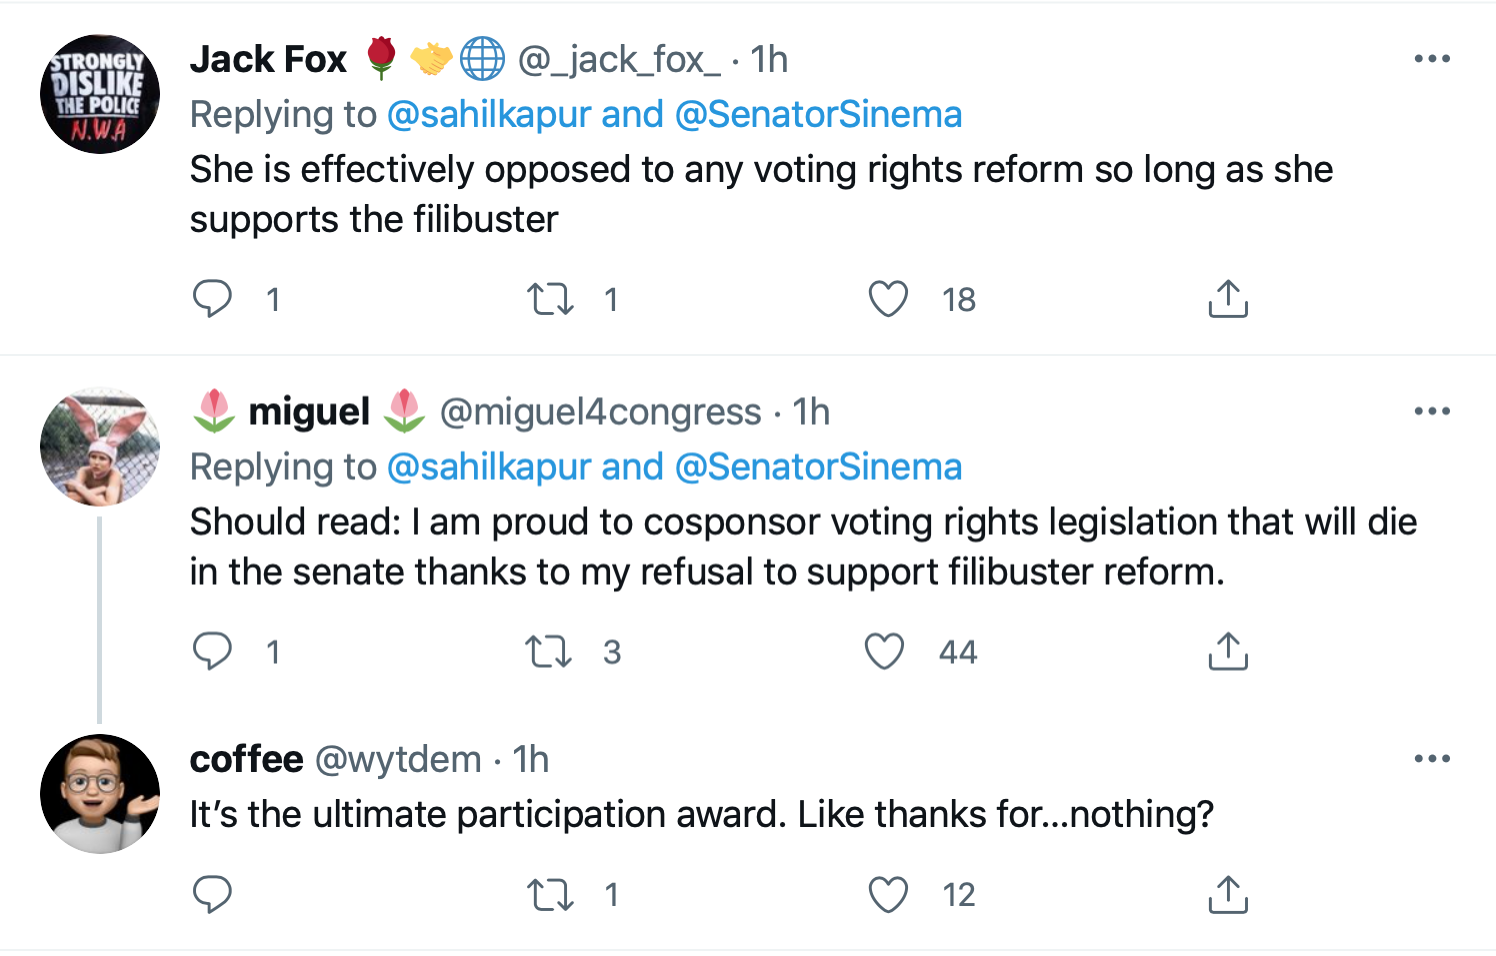 Screen-Shot-2021-07-01-at-4.33.40-PM Kyrsten Sinema Calls For Votings Rights Act After SCOTUS Ruling Civil Rights Featured Politics Top Stories Twitter